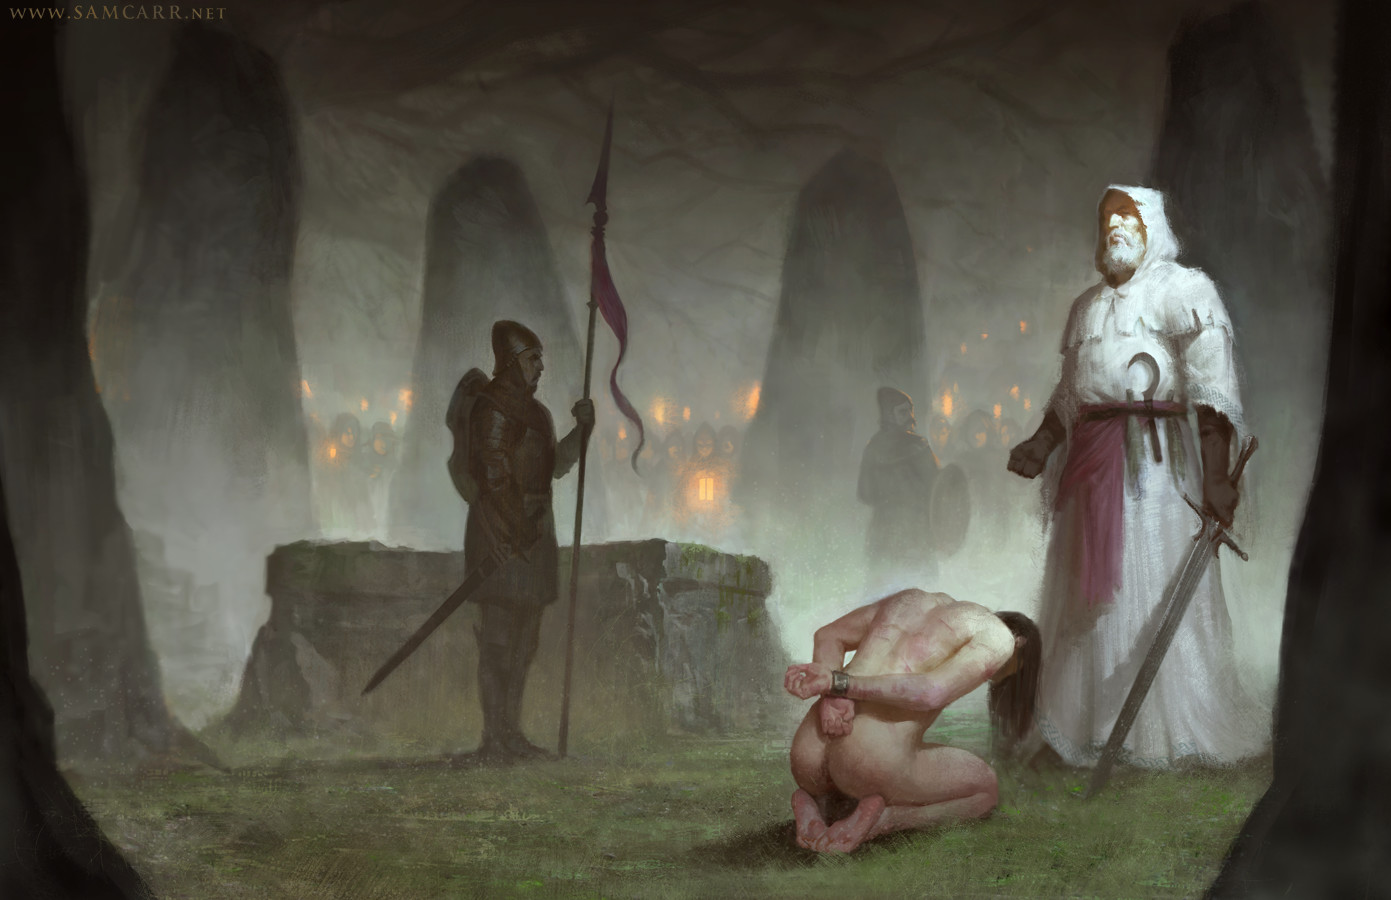 Fate of the Remnants: The Execution